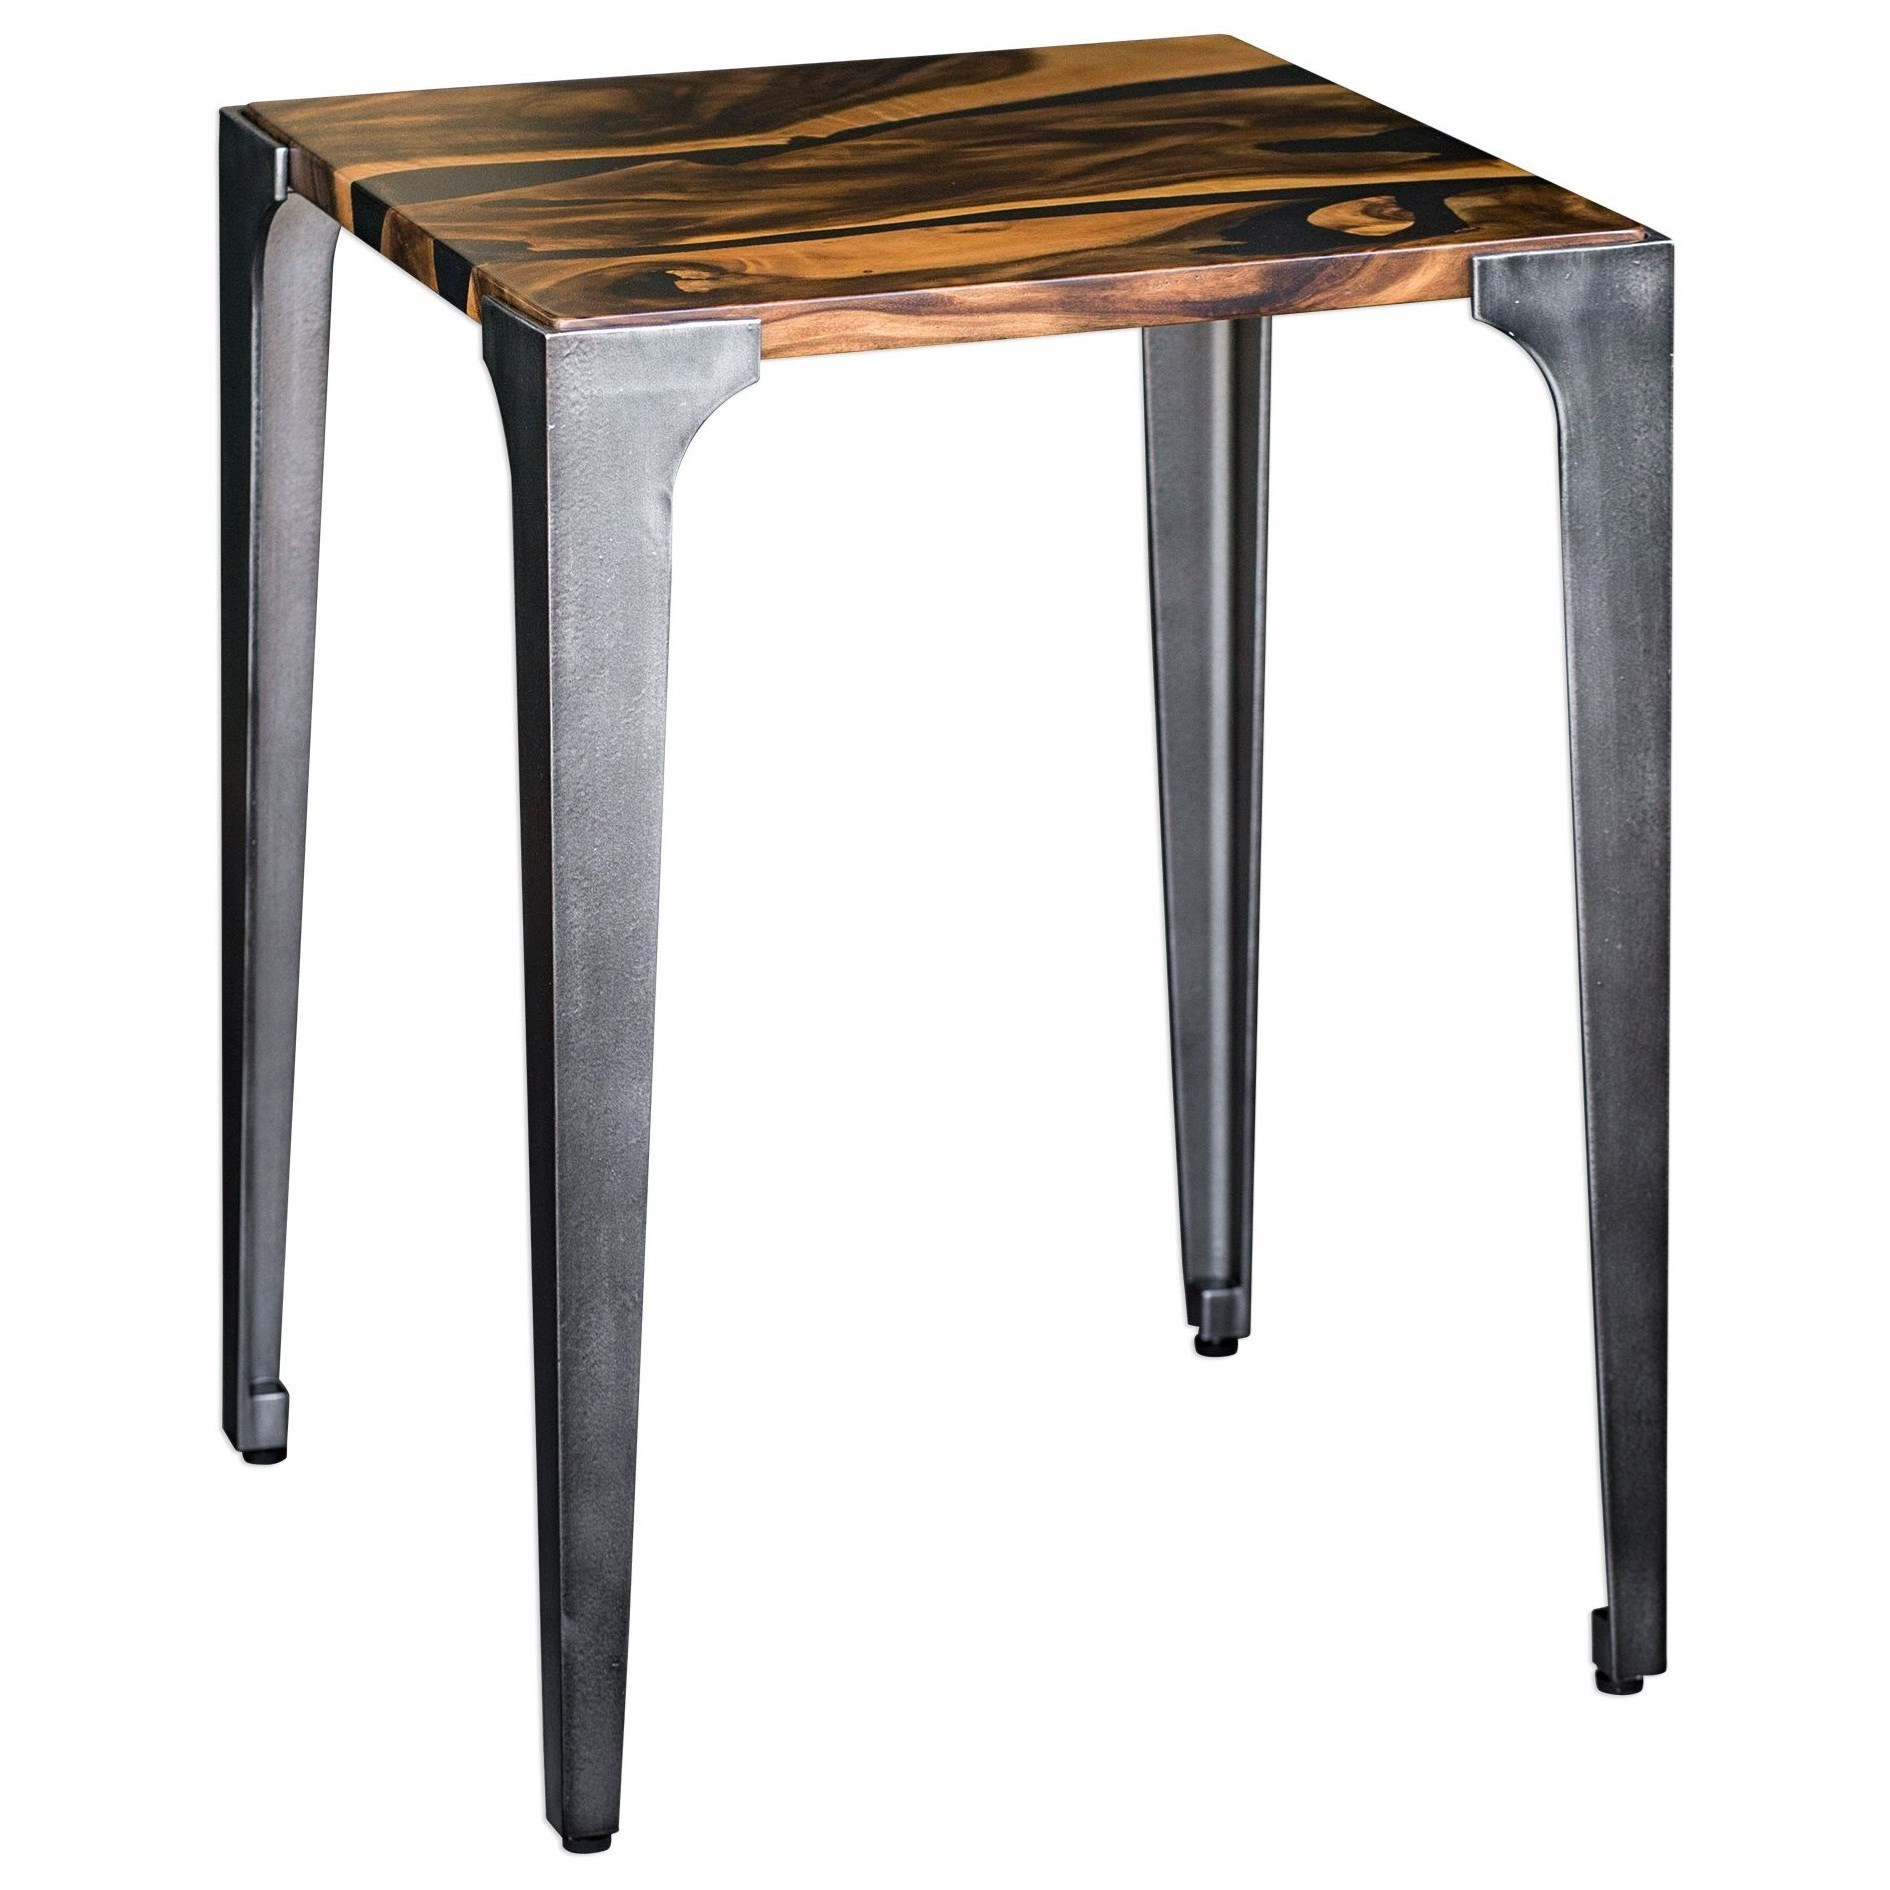 Accent Furniture - Occasional Tables Mira Acacia Side Table by Uttermost at Del Sol Furniture